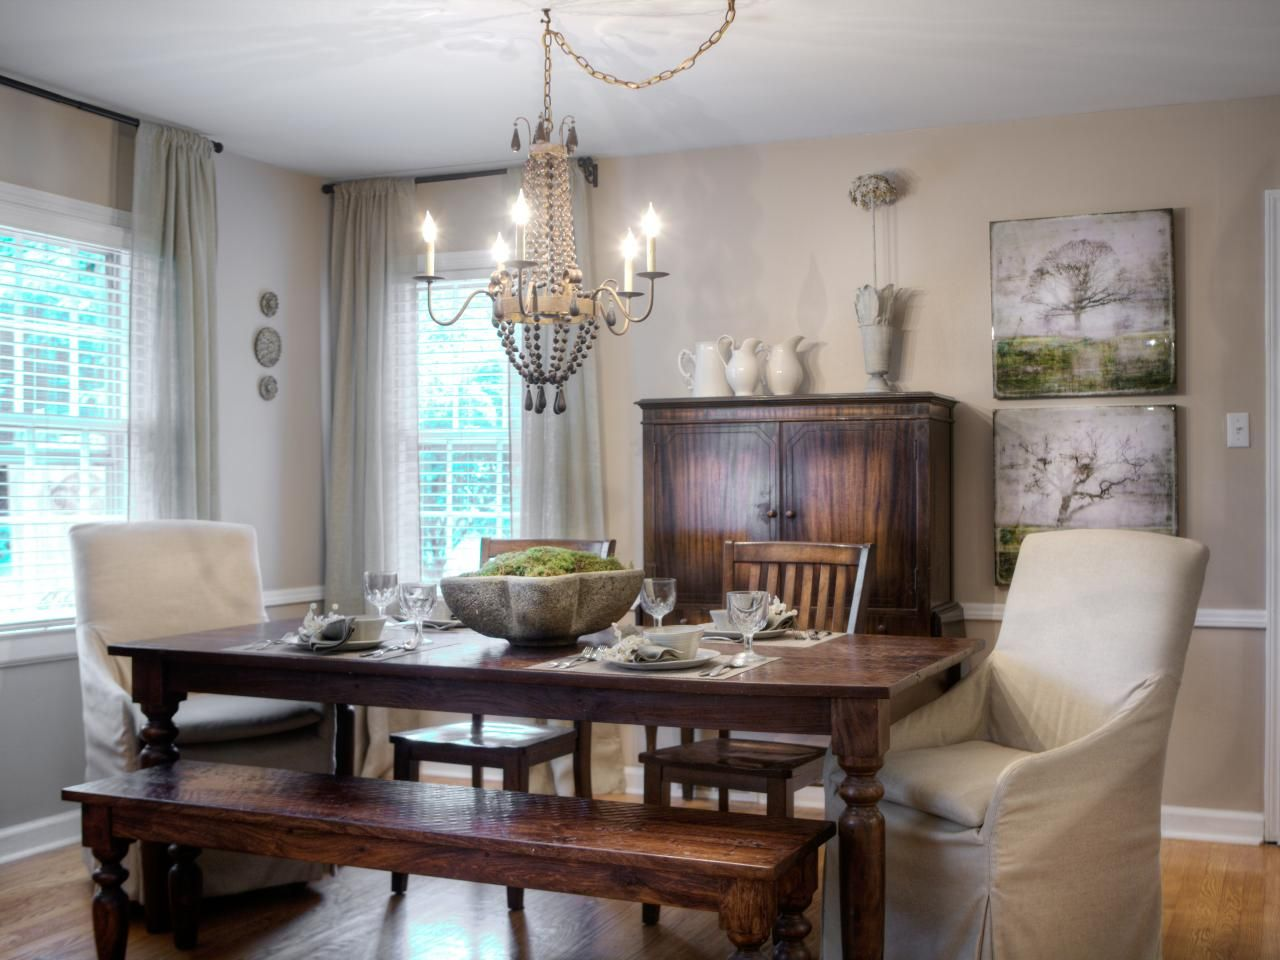 Comfy Dining Room Chairs Captivating A Mix Of Seating Including A Bench Wood Chairs And Slipcovered Design Inspiration